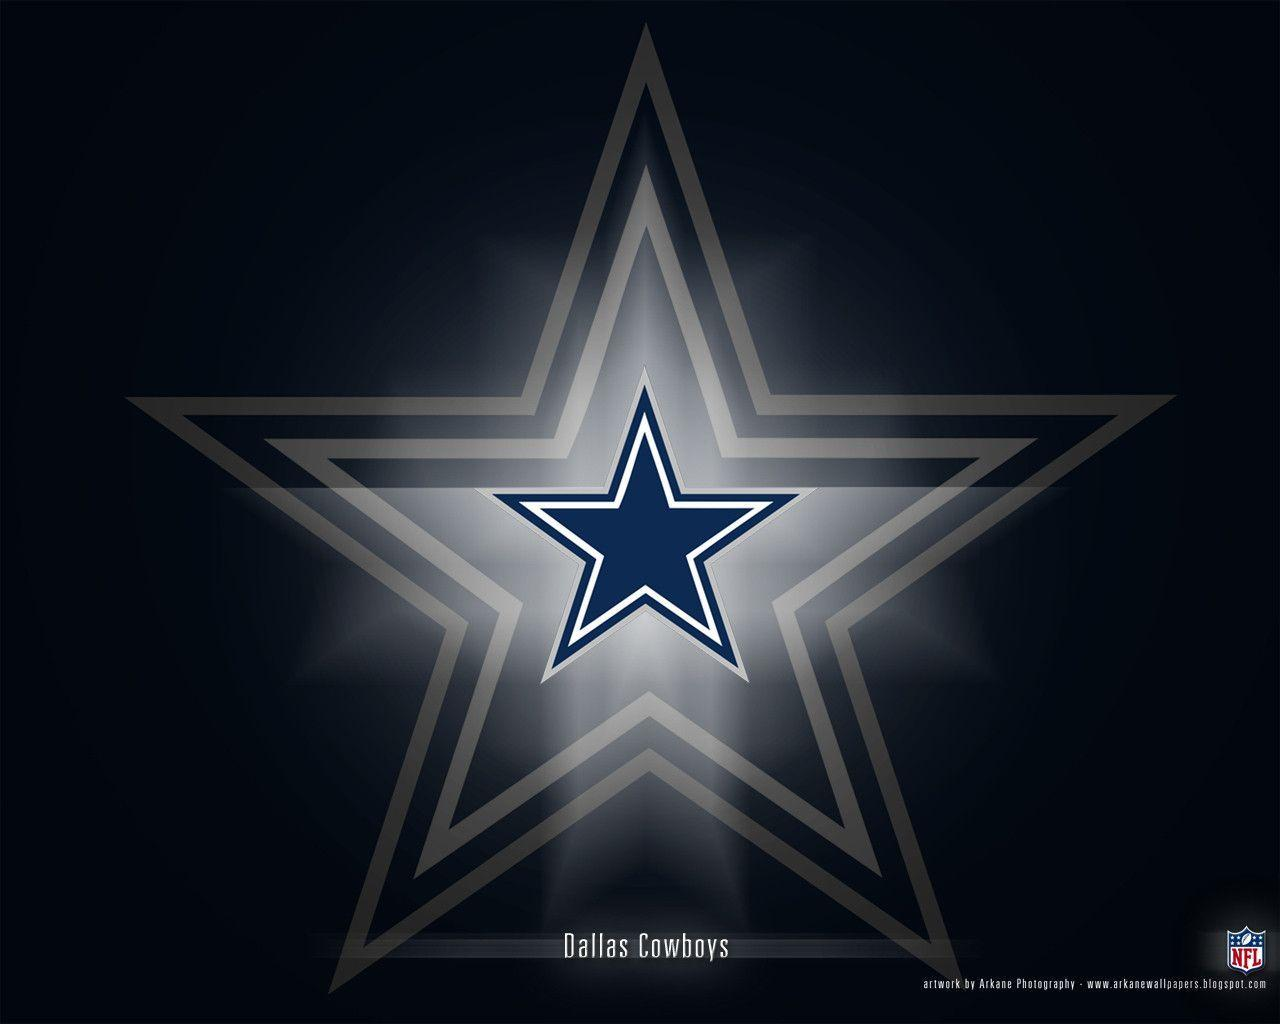 dallas cowboys images wallpapers